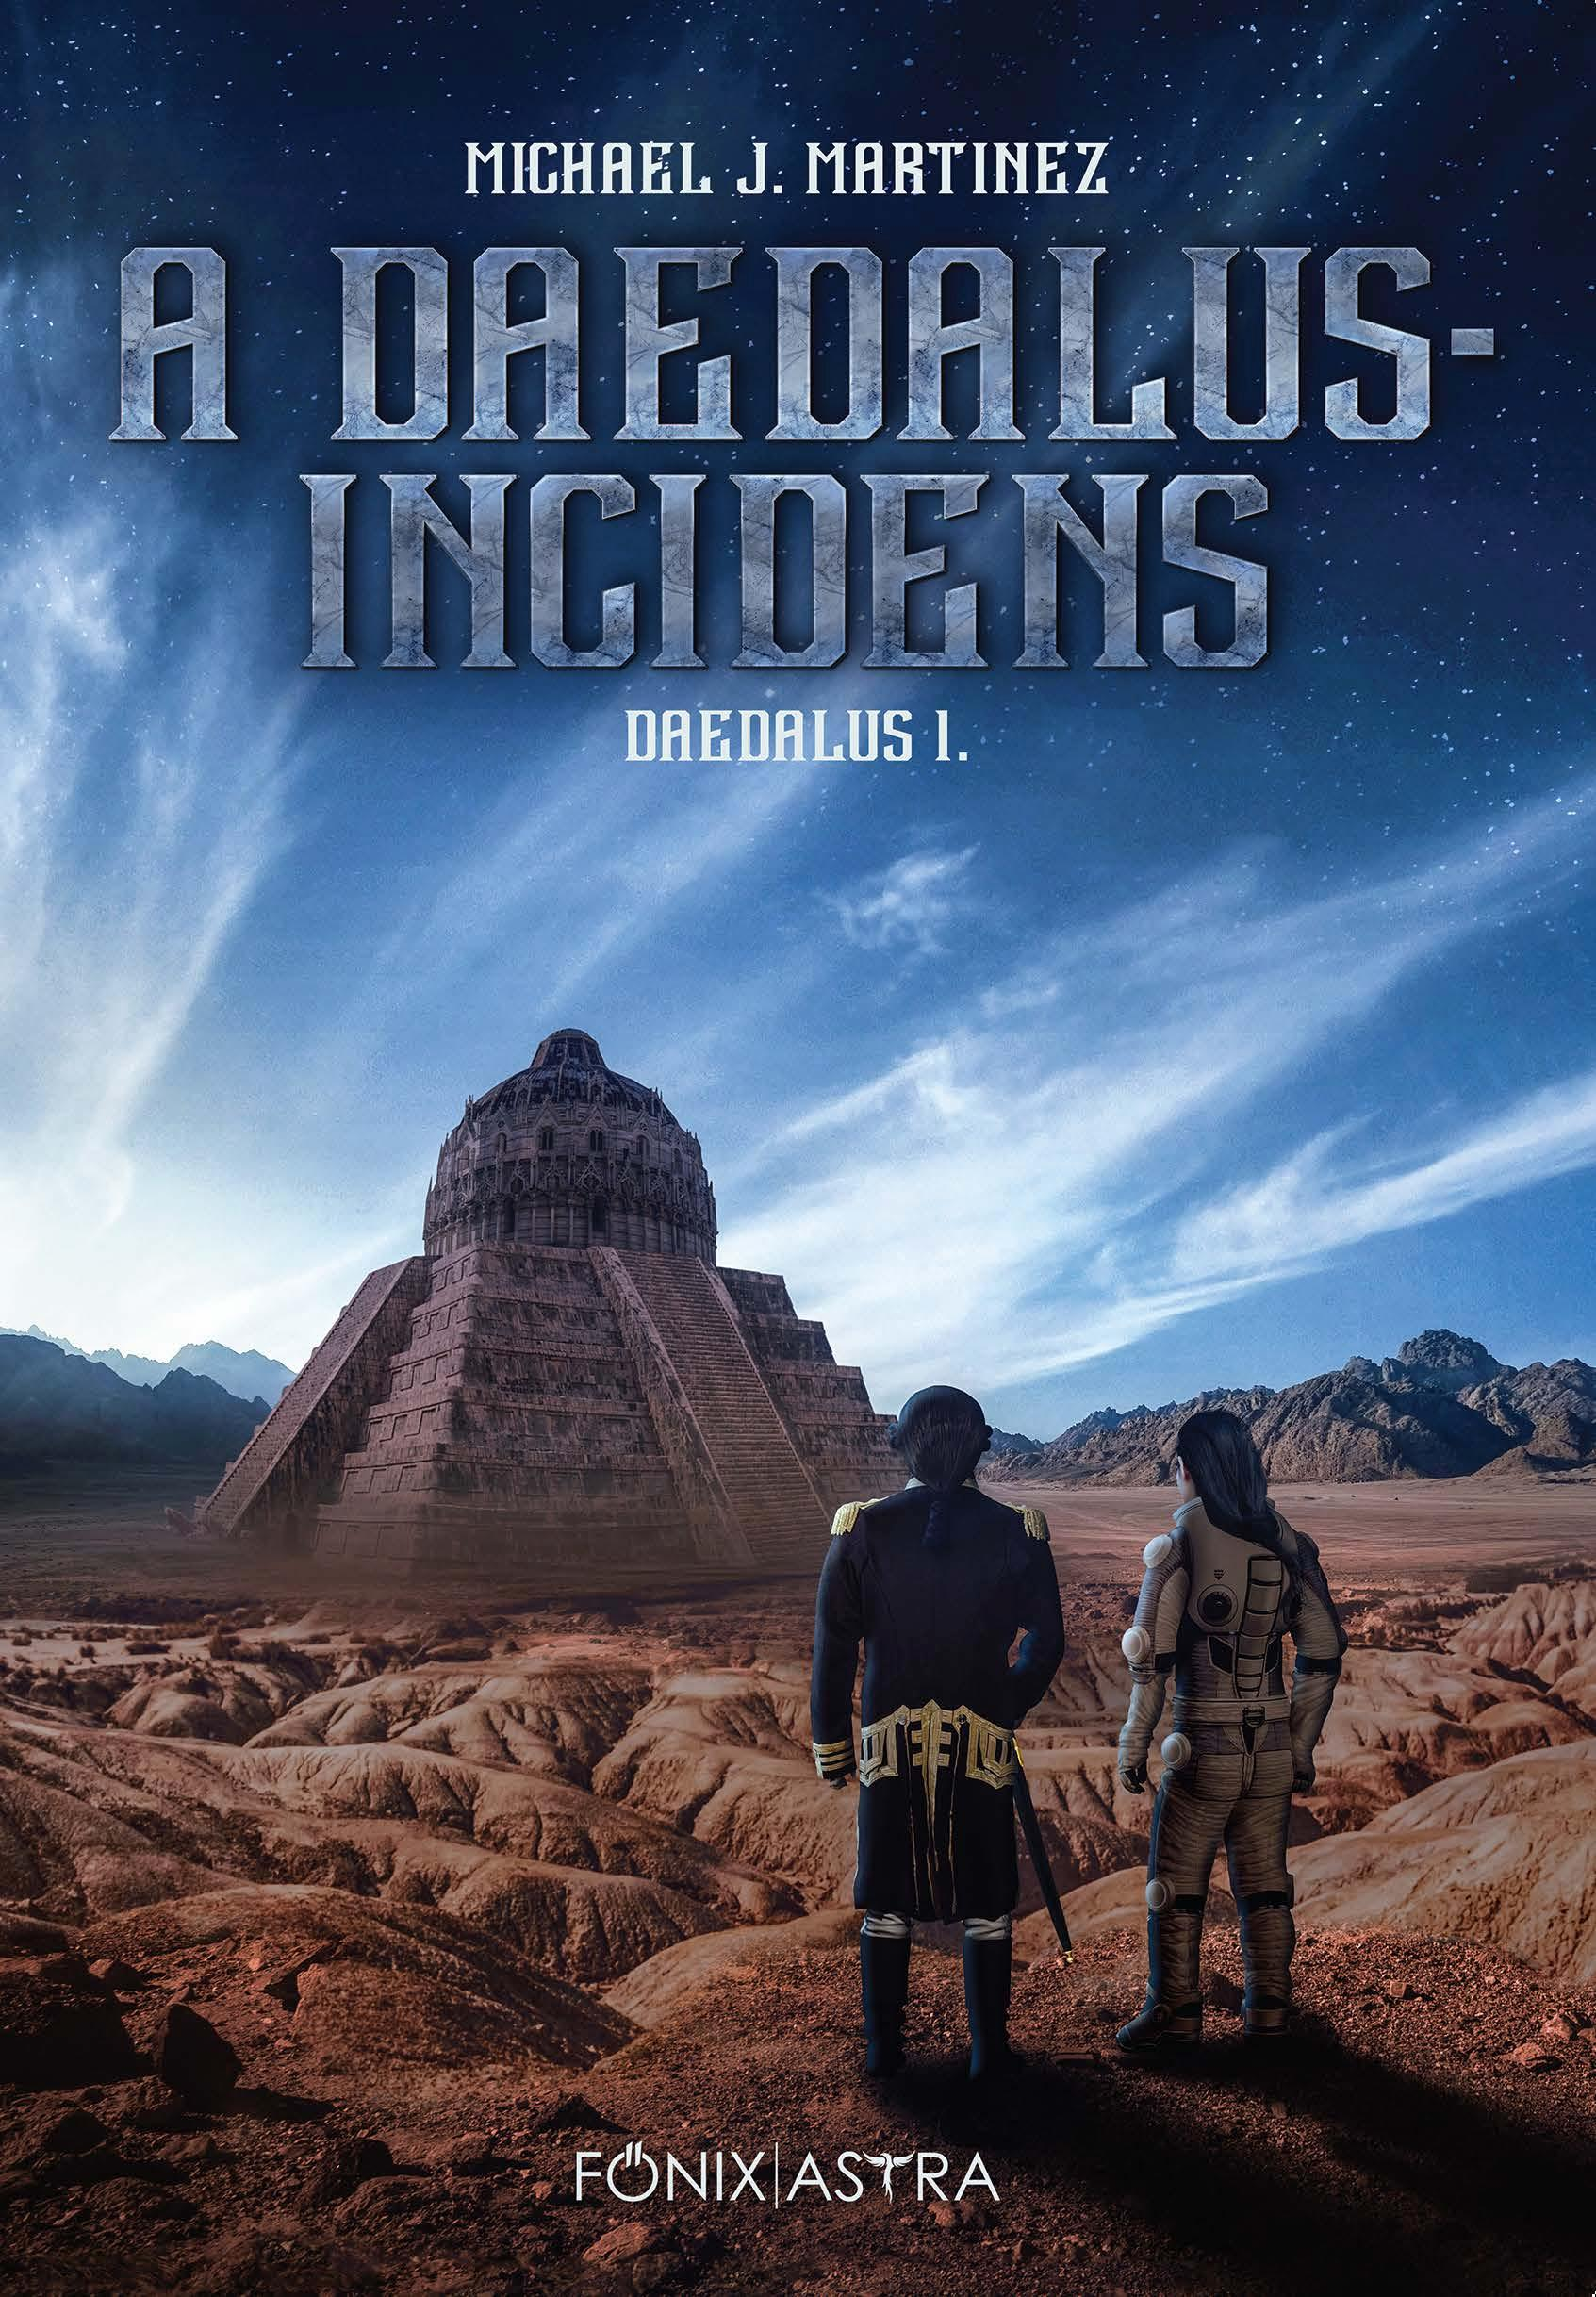 MARTINEZ, MICHAEL J. - A DAEDALUS-INCIDENS